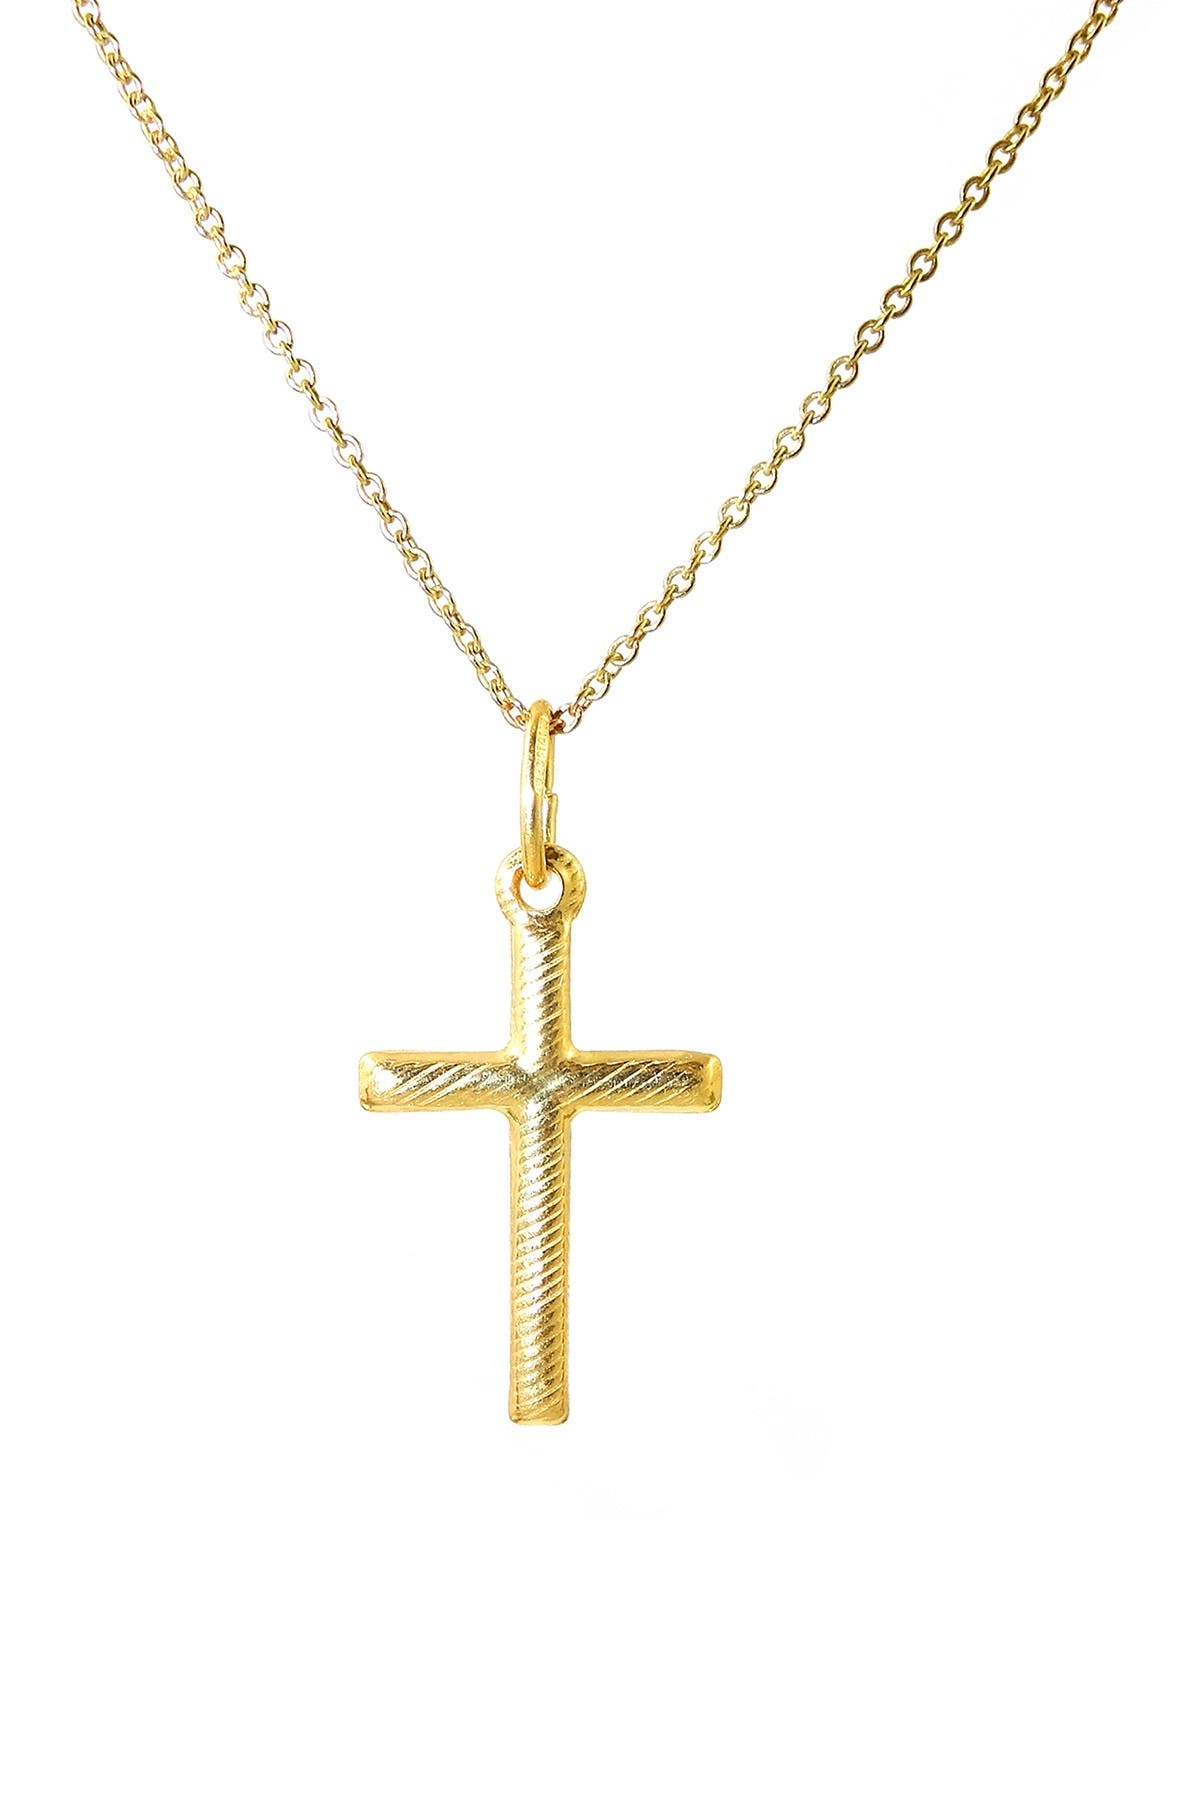 Image of Savvy Cie 18K Gold Vermeil Italian Design Cross Pendant Necklace